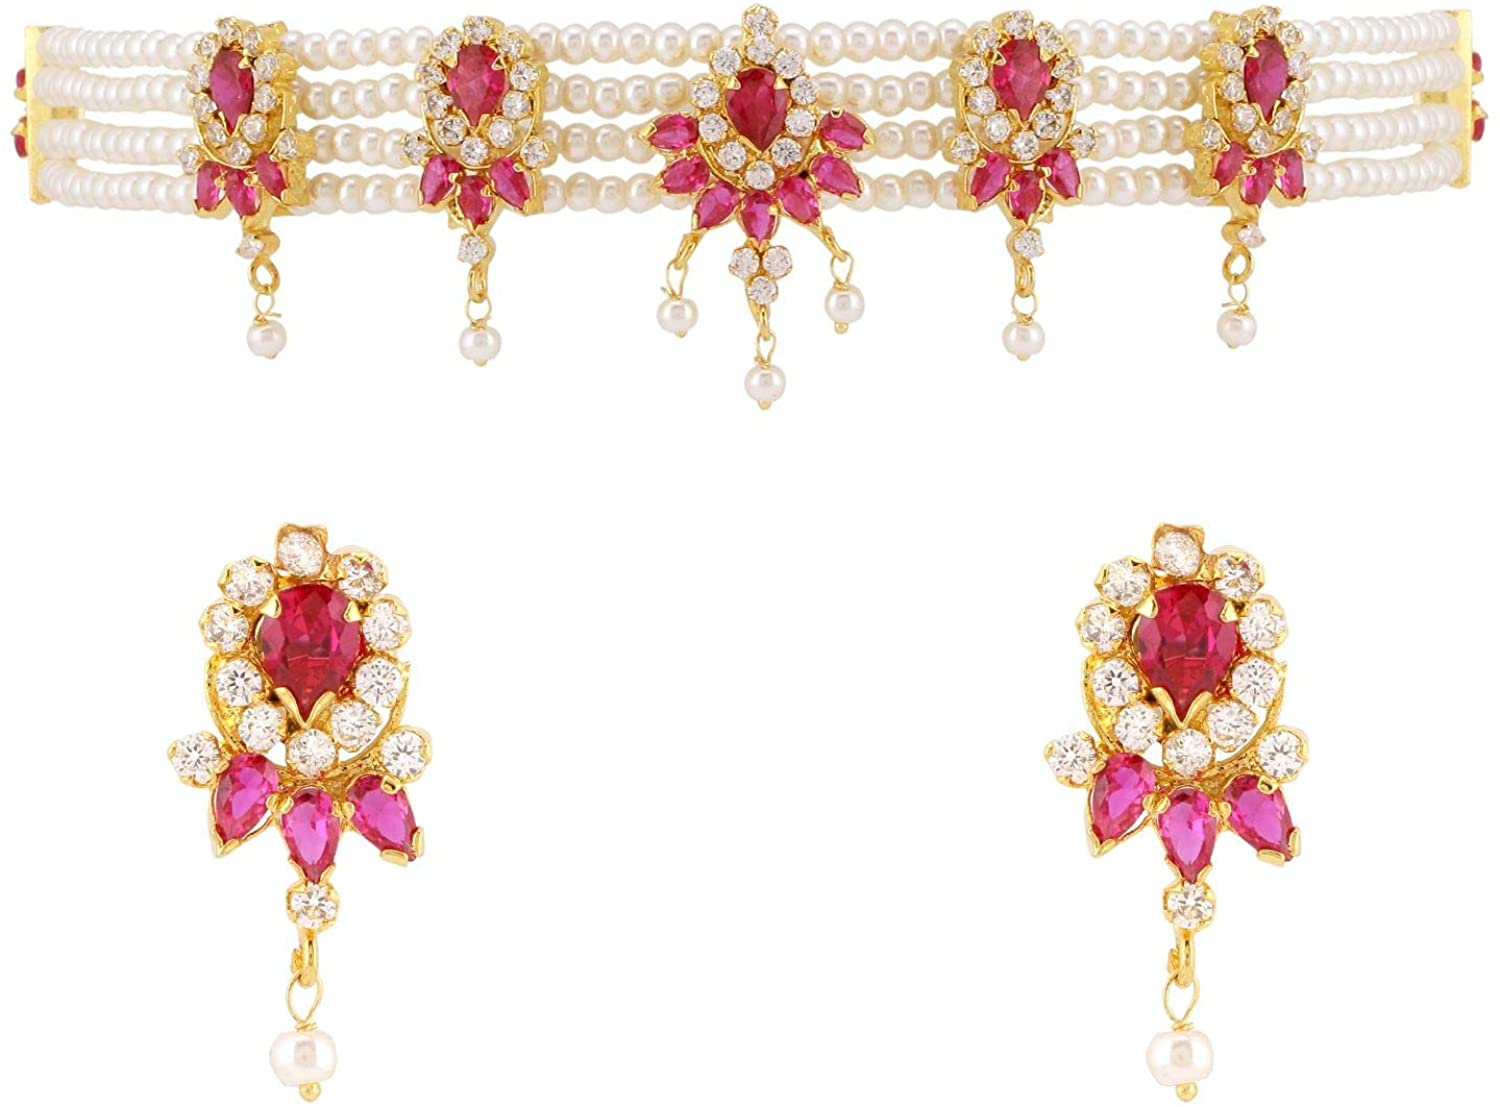 Efulgenz Indian Jewelry Set CZ Cubic Zirconia Faux Pearl Multicolor Layered Strand Beaded Choker Necklace Earrings Set